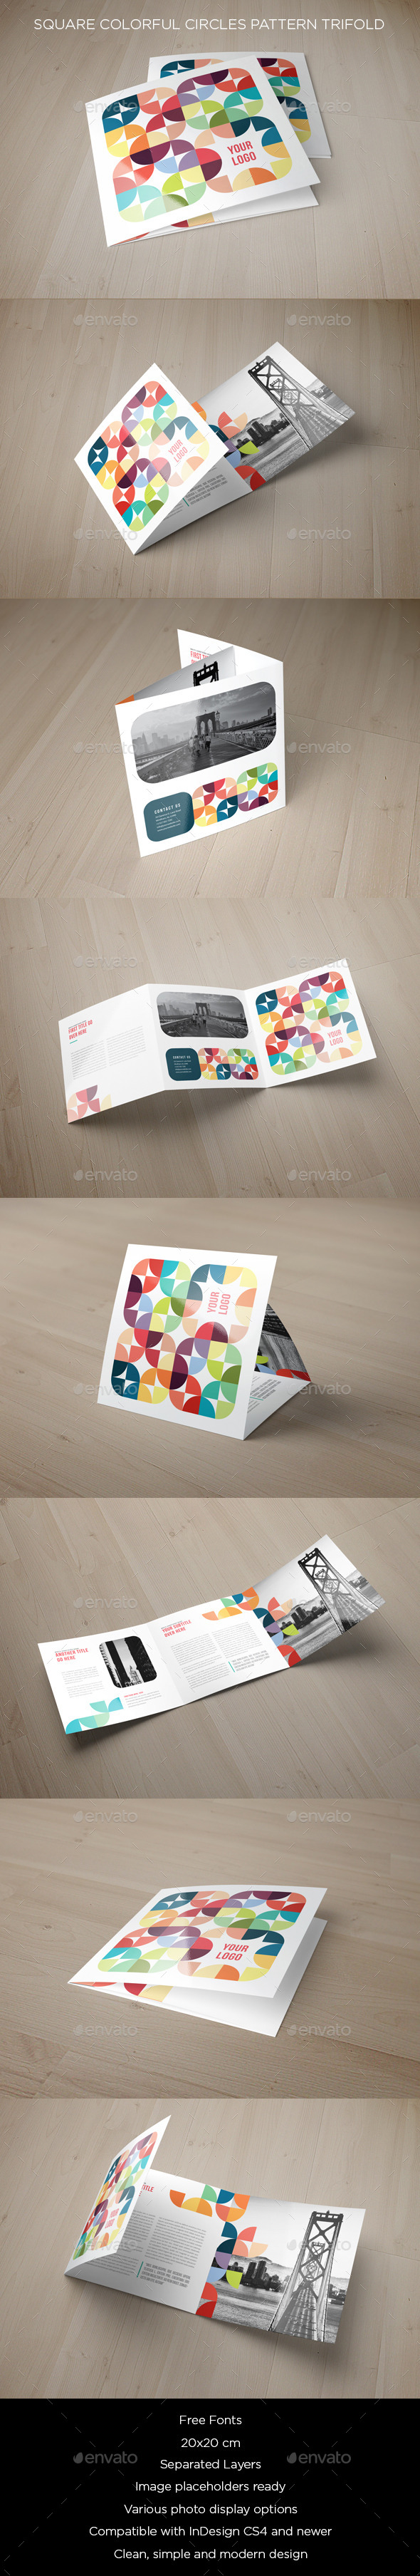 GraphicRiver Square Colorful Circles Pattern Trifold 10740784